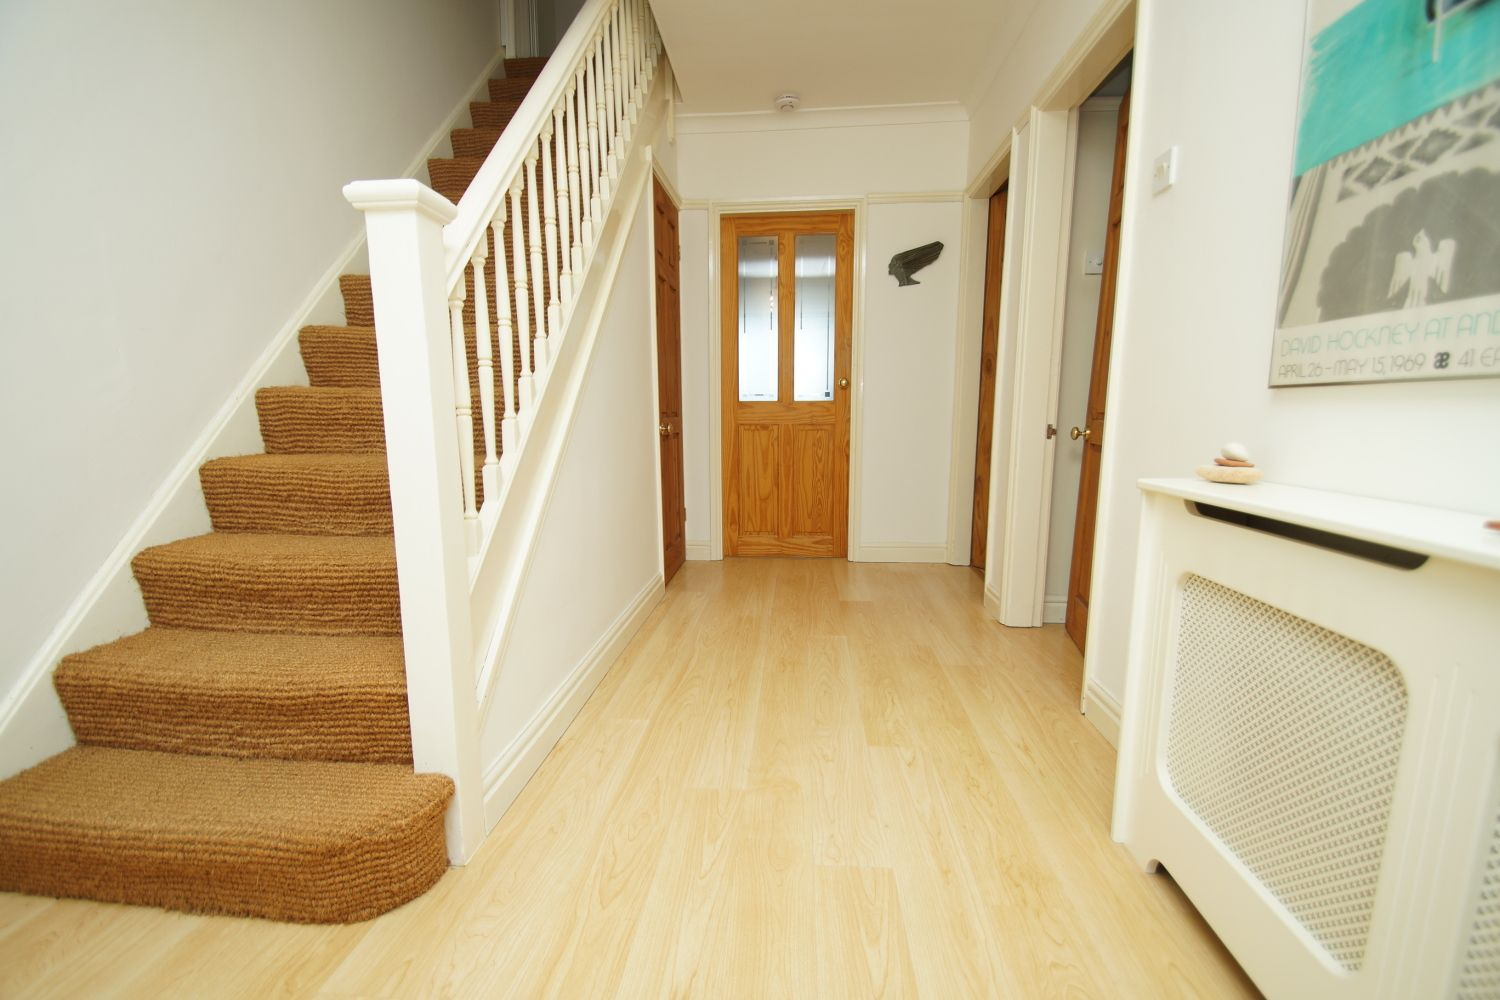 3 bed detached for sale in Fox Lane, Bromsgrove 3